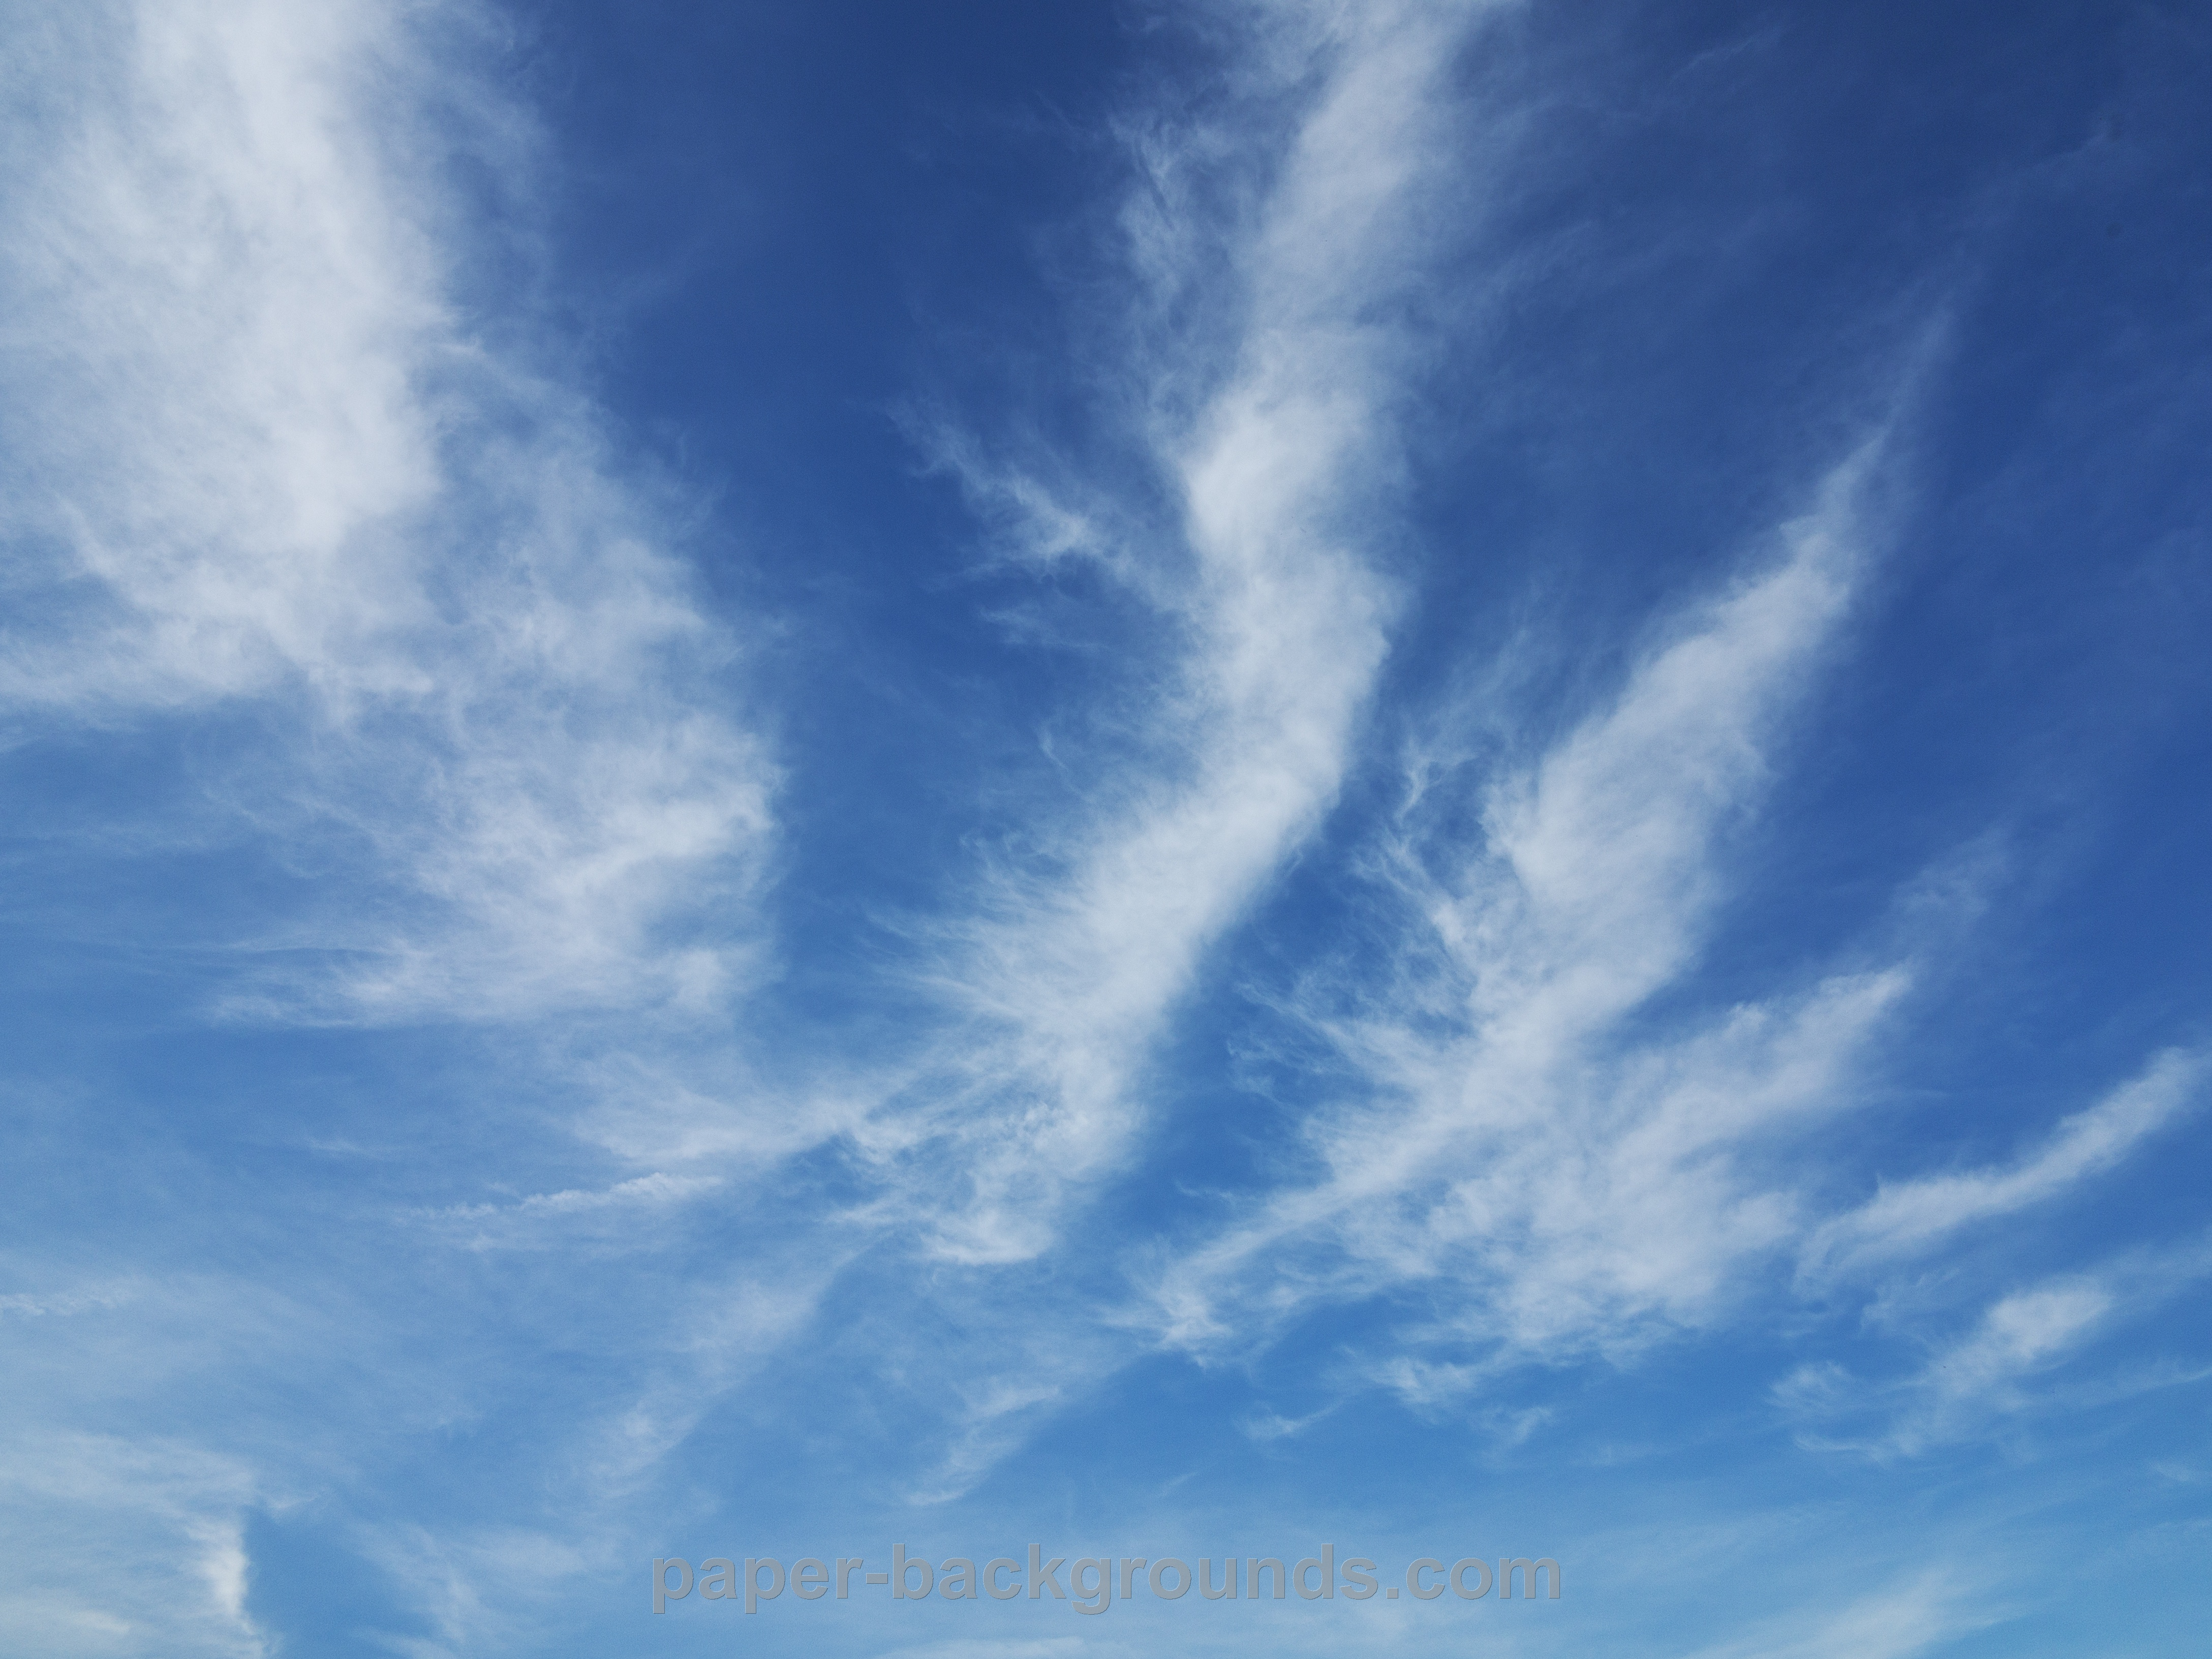 Paper Backgrounds   blue-sky-clouds-background